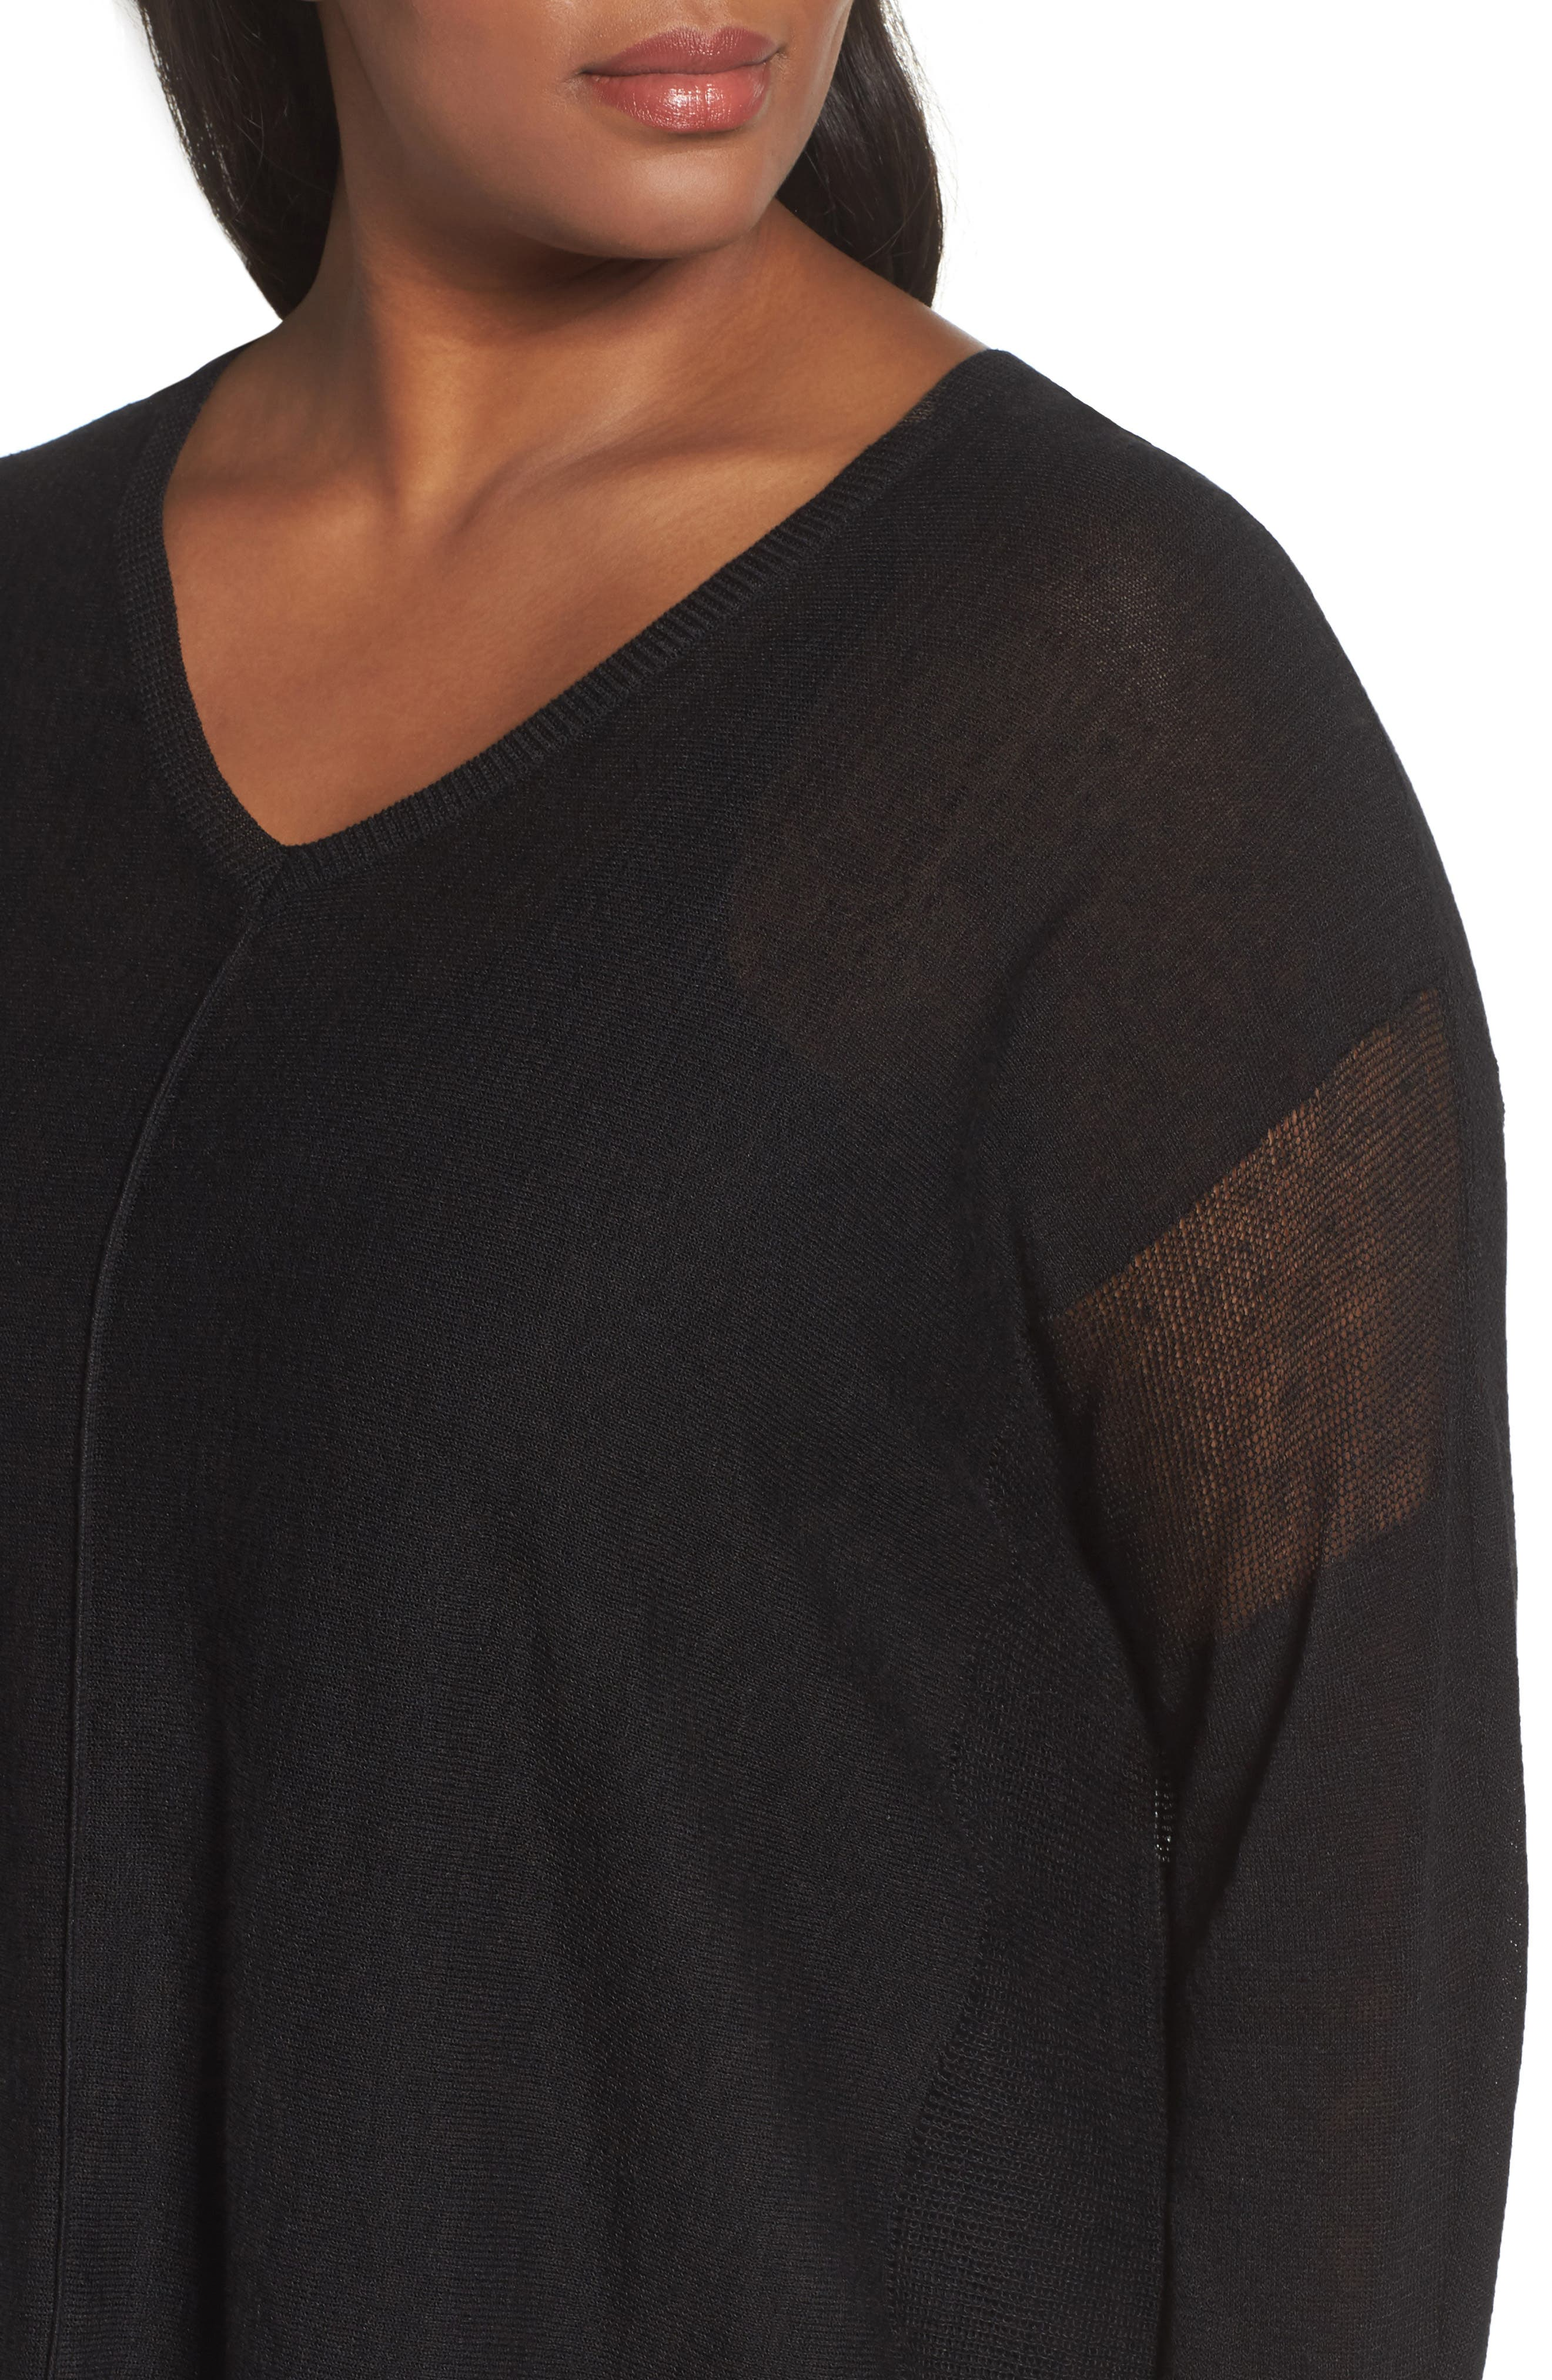 Sheer Inset Linen Blend Tunic Top,                             Alternate thumbnail 4, color,                             001